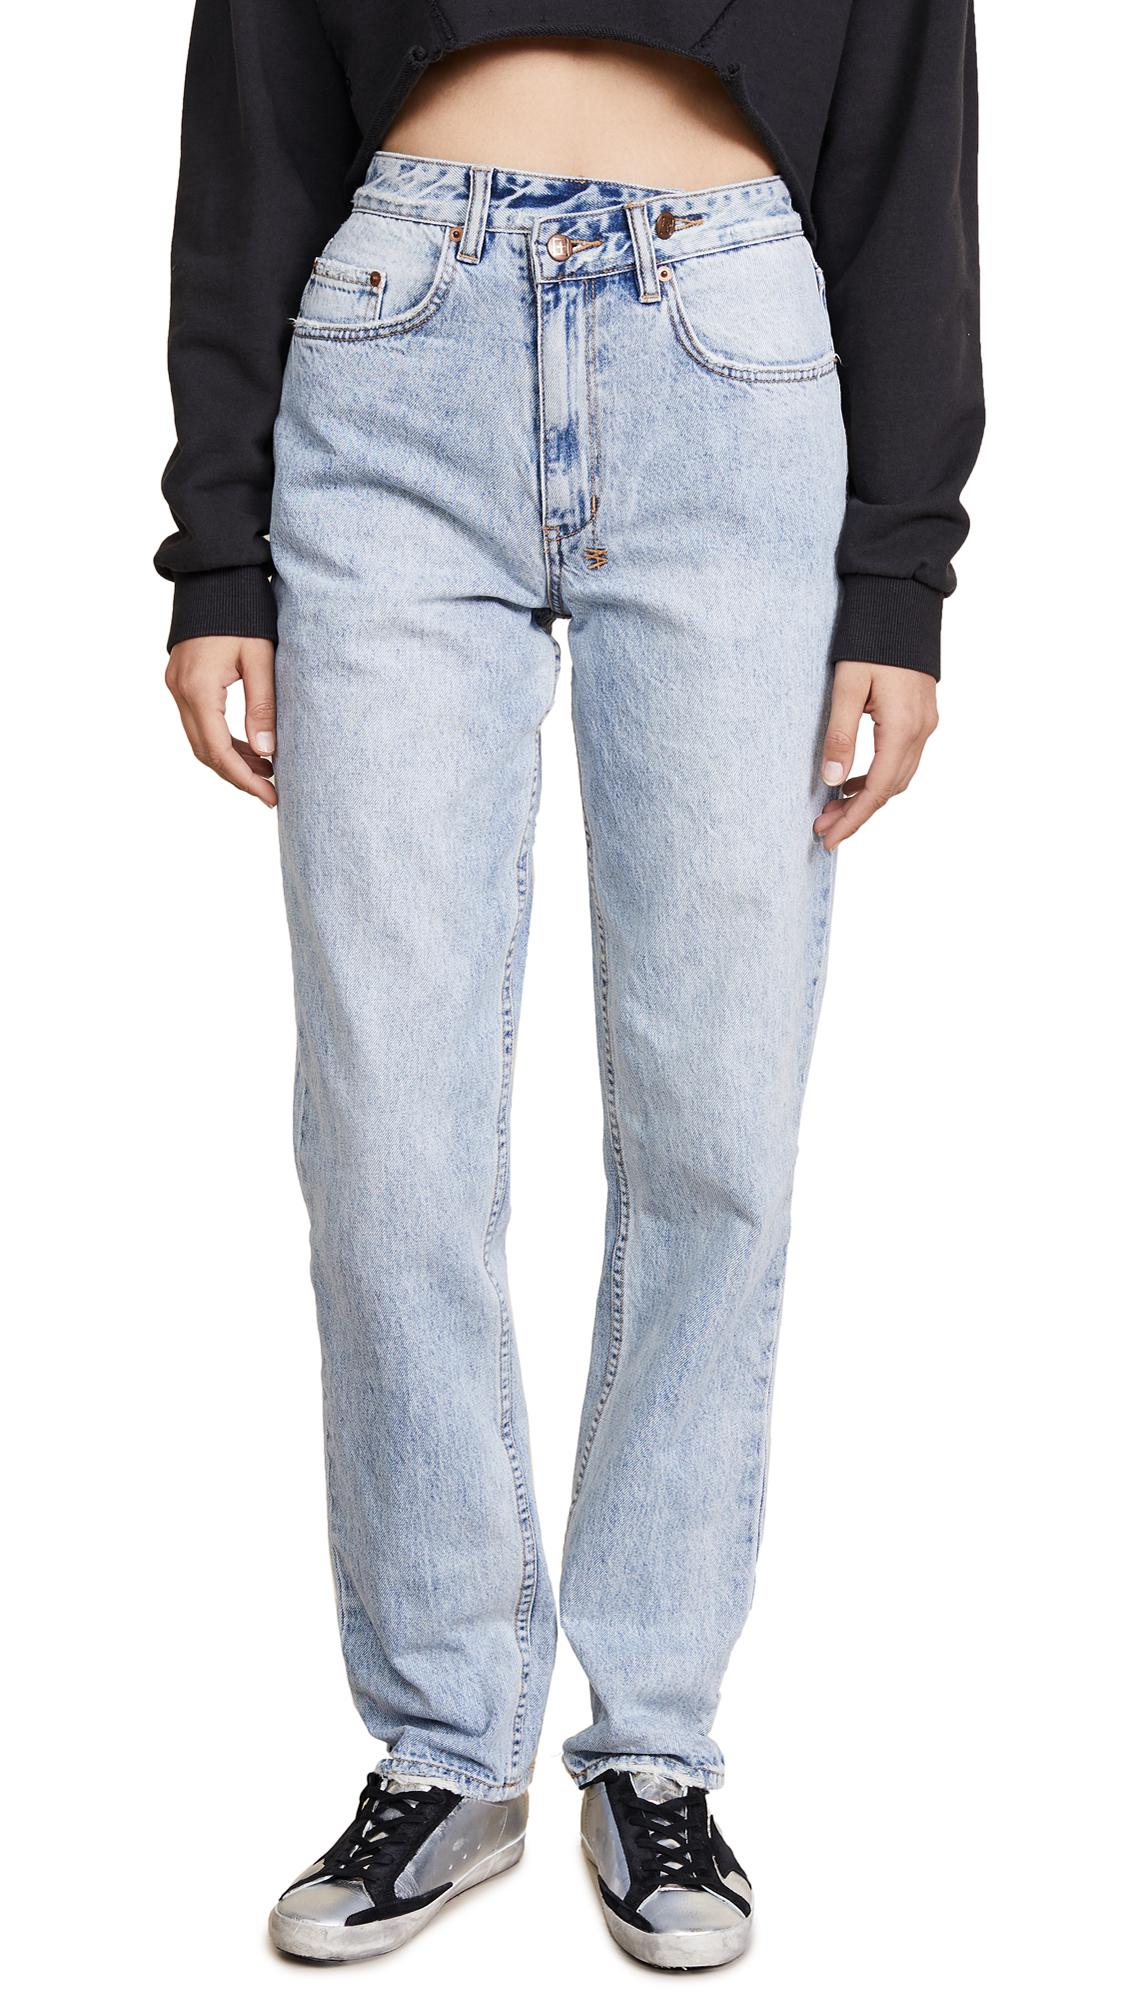 8aa1026c3e6 Gallery. Previously sold at: Shopbop · Women's Boyfriend Jeans